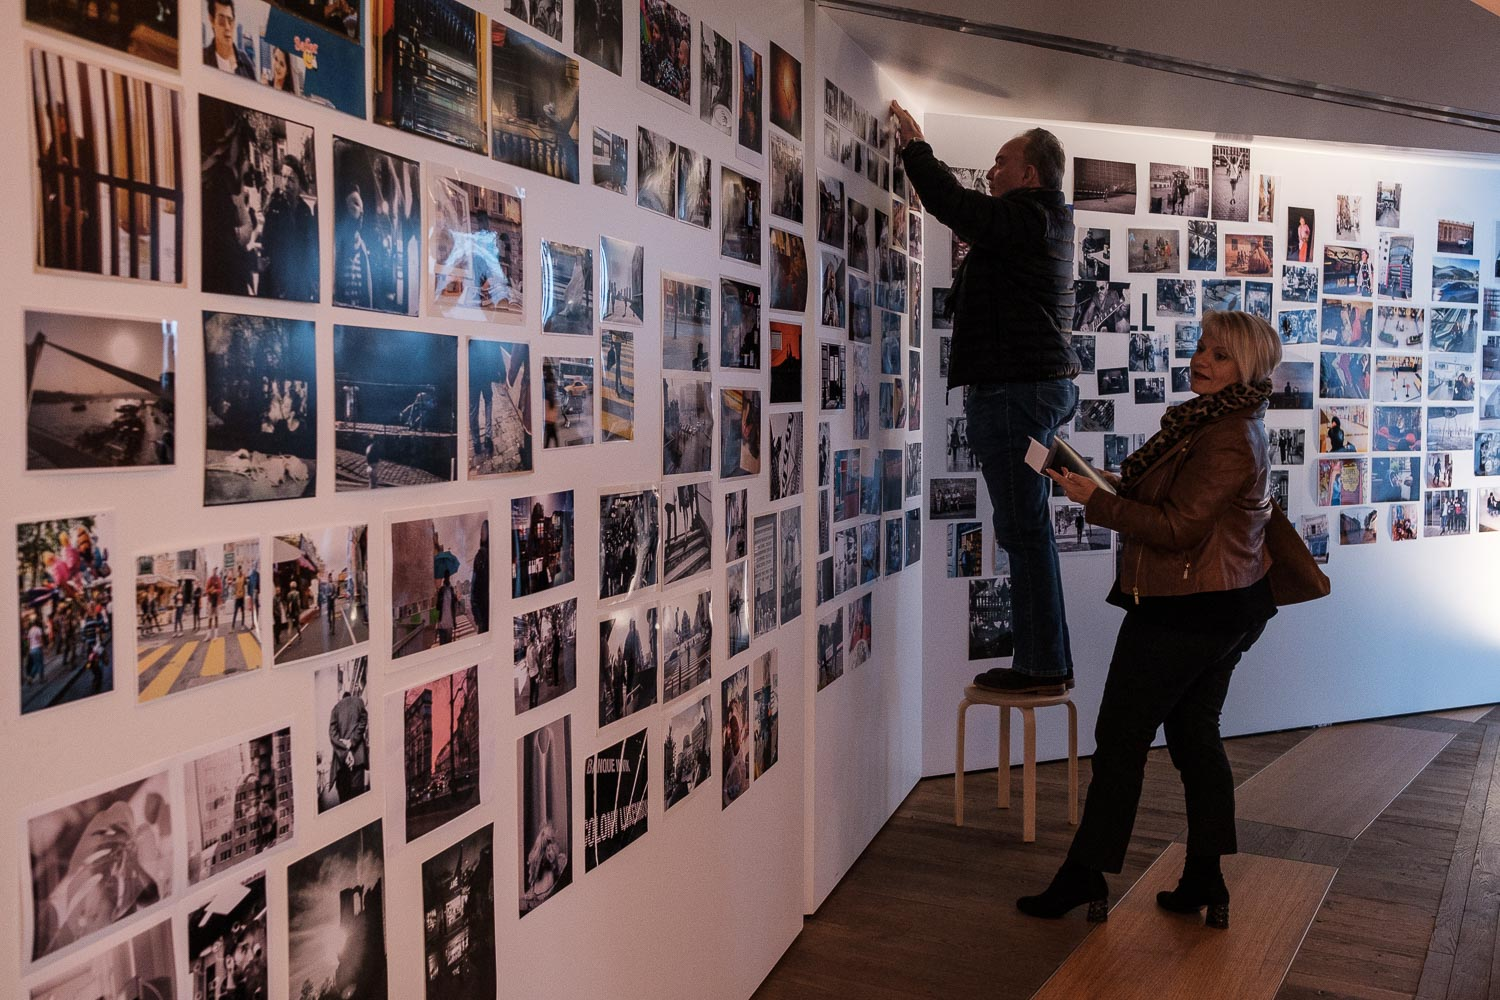 Luxembourg Street Photography Festival 2019 at Rotondes - LSPF 2019 - Open Wall